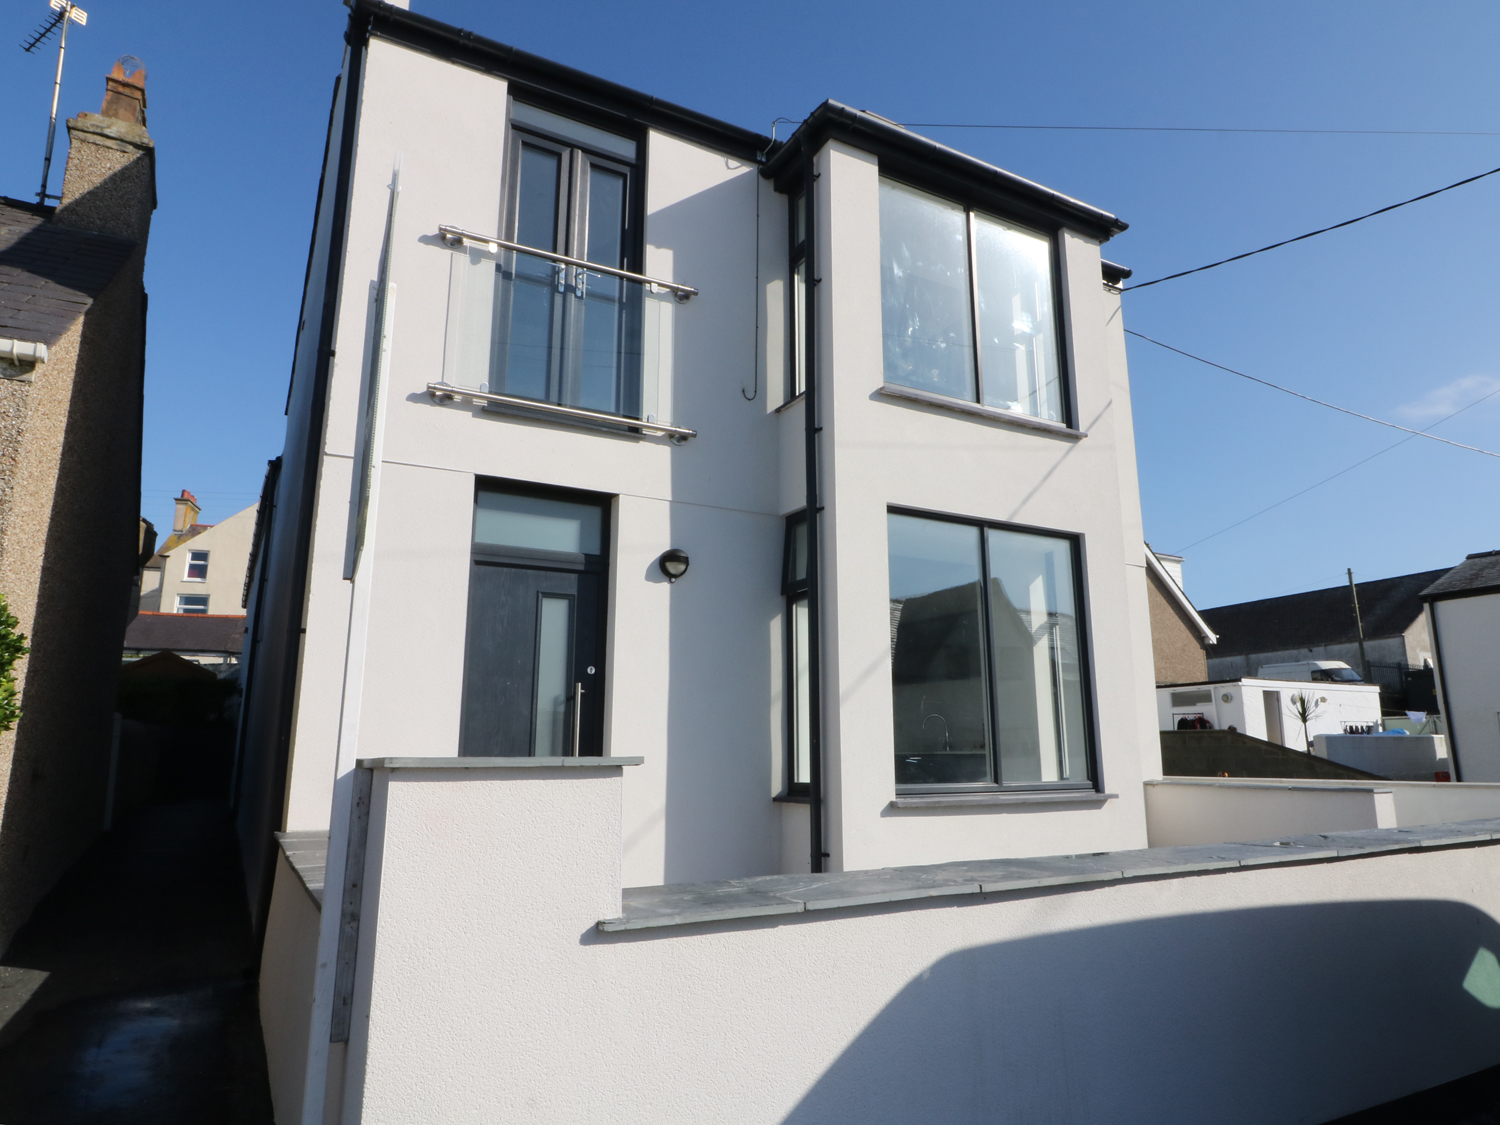 2 bedroom Cottage for rent in Rhosneigr